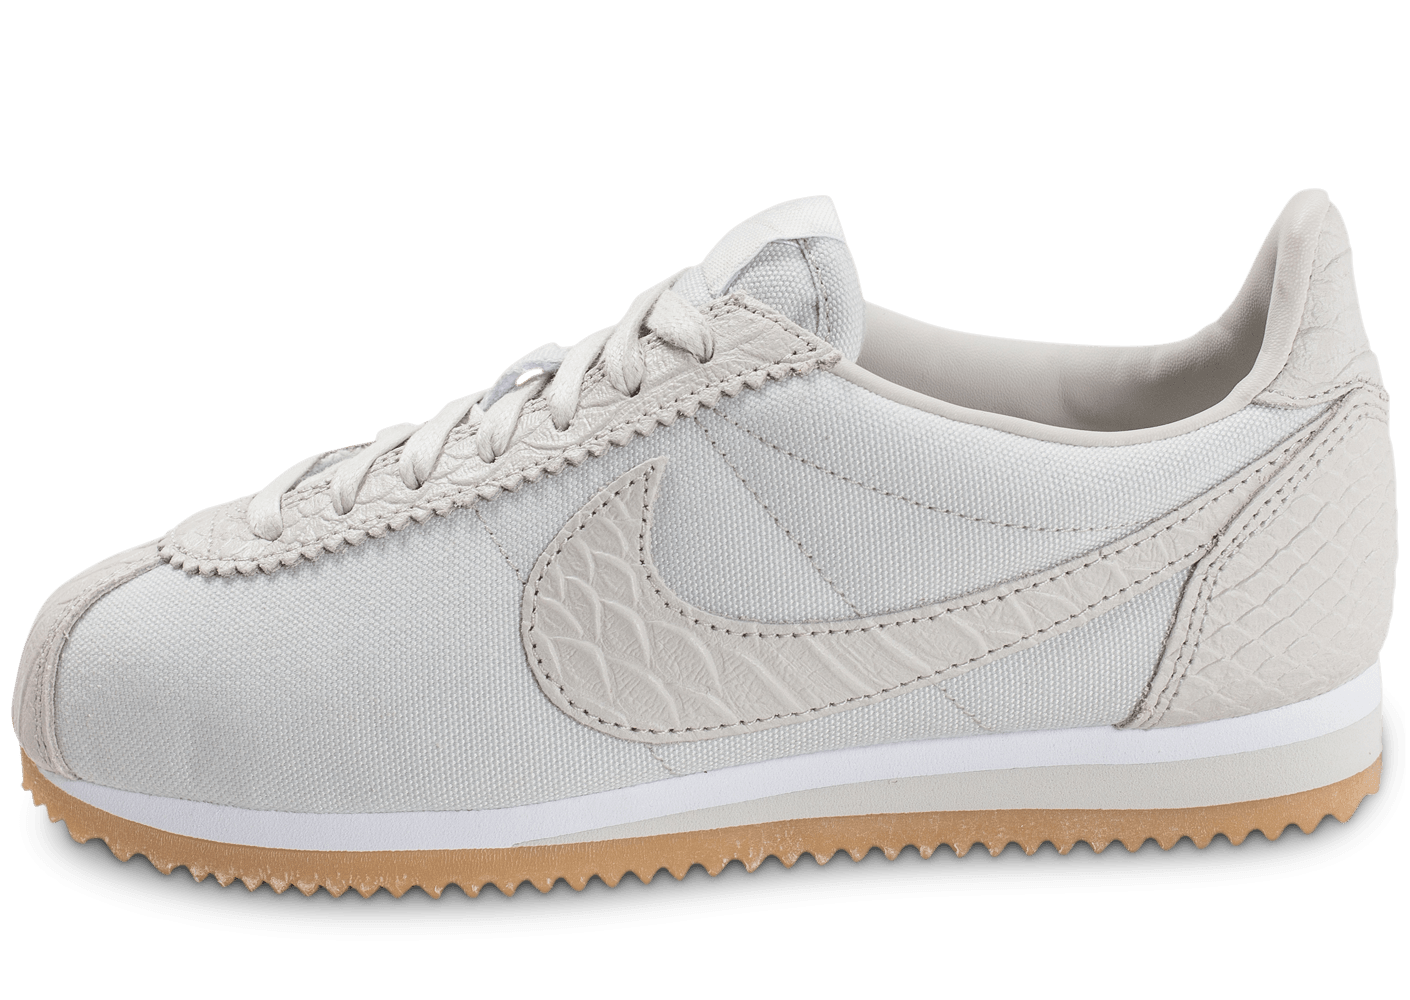 nike cortez se w light bone chaussures femme chausport. Black Bedroom Furniture Sets. Home Design Ideas